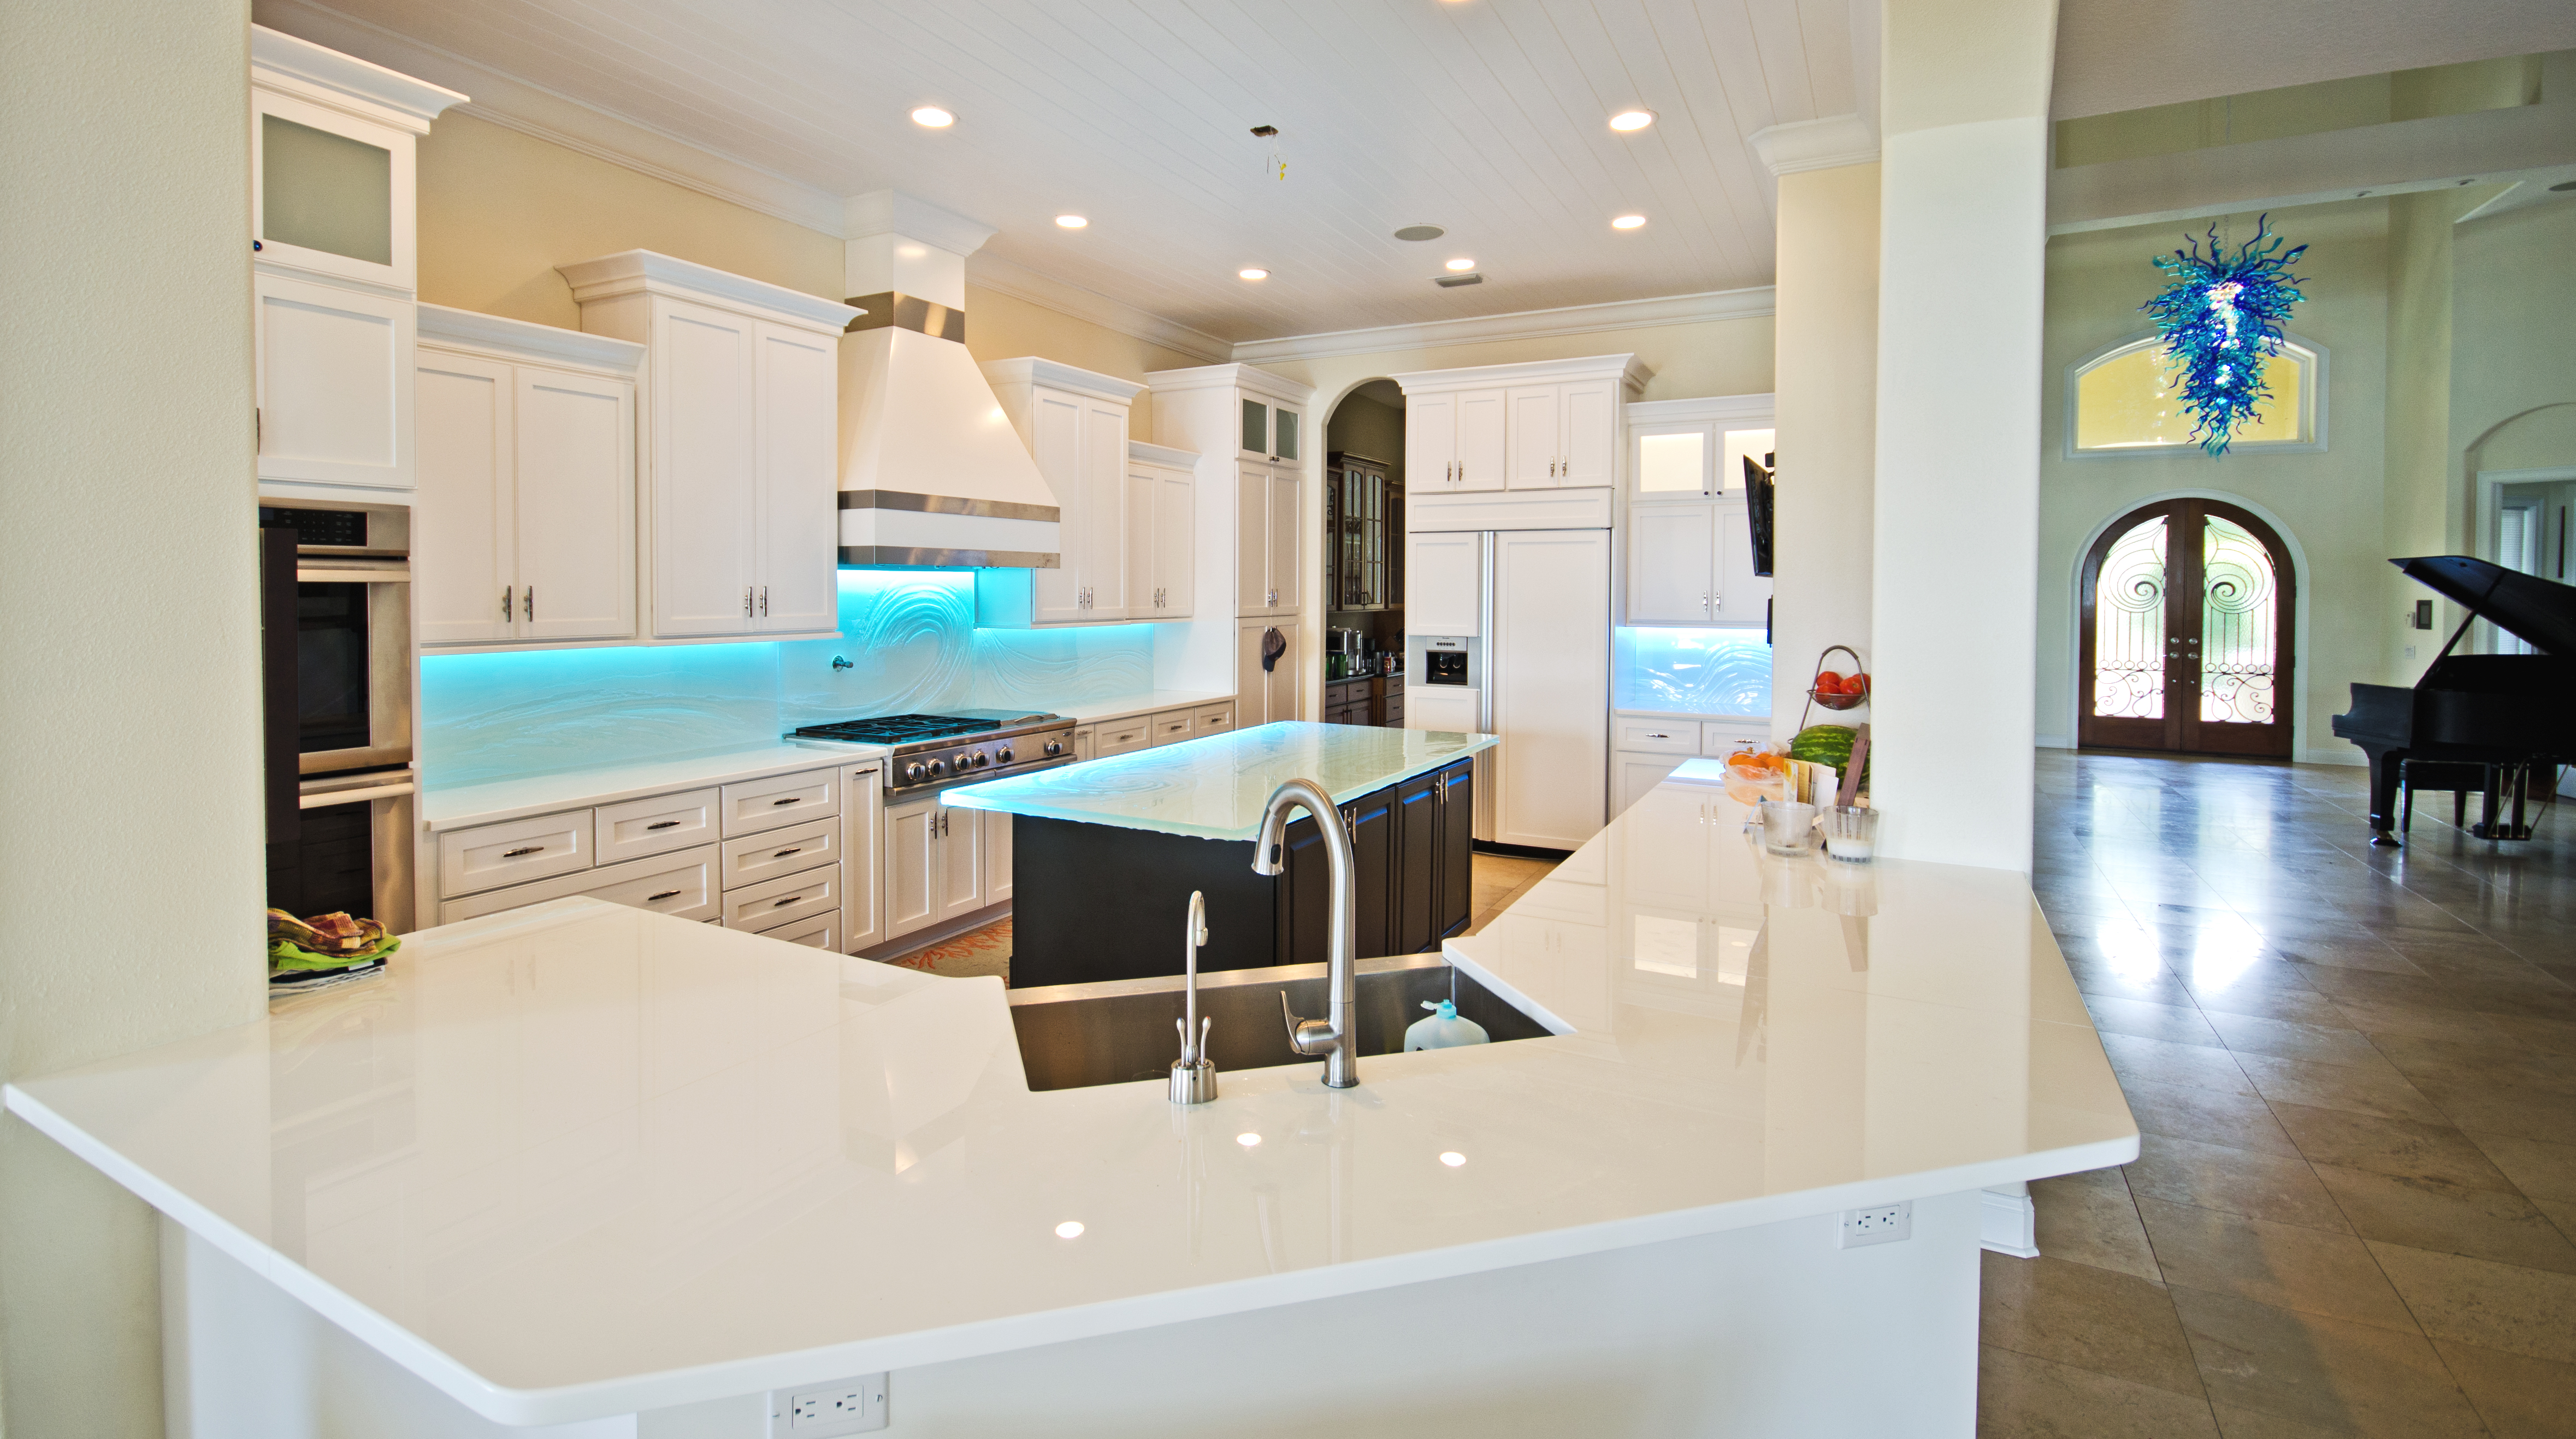 remnants dallas laminated recycled utilizing tampa granite kitchen materials prices tempered countertops tacoma countertop top glass